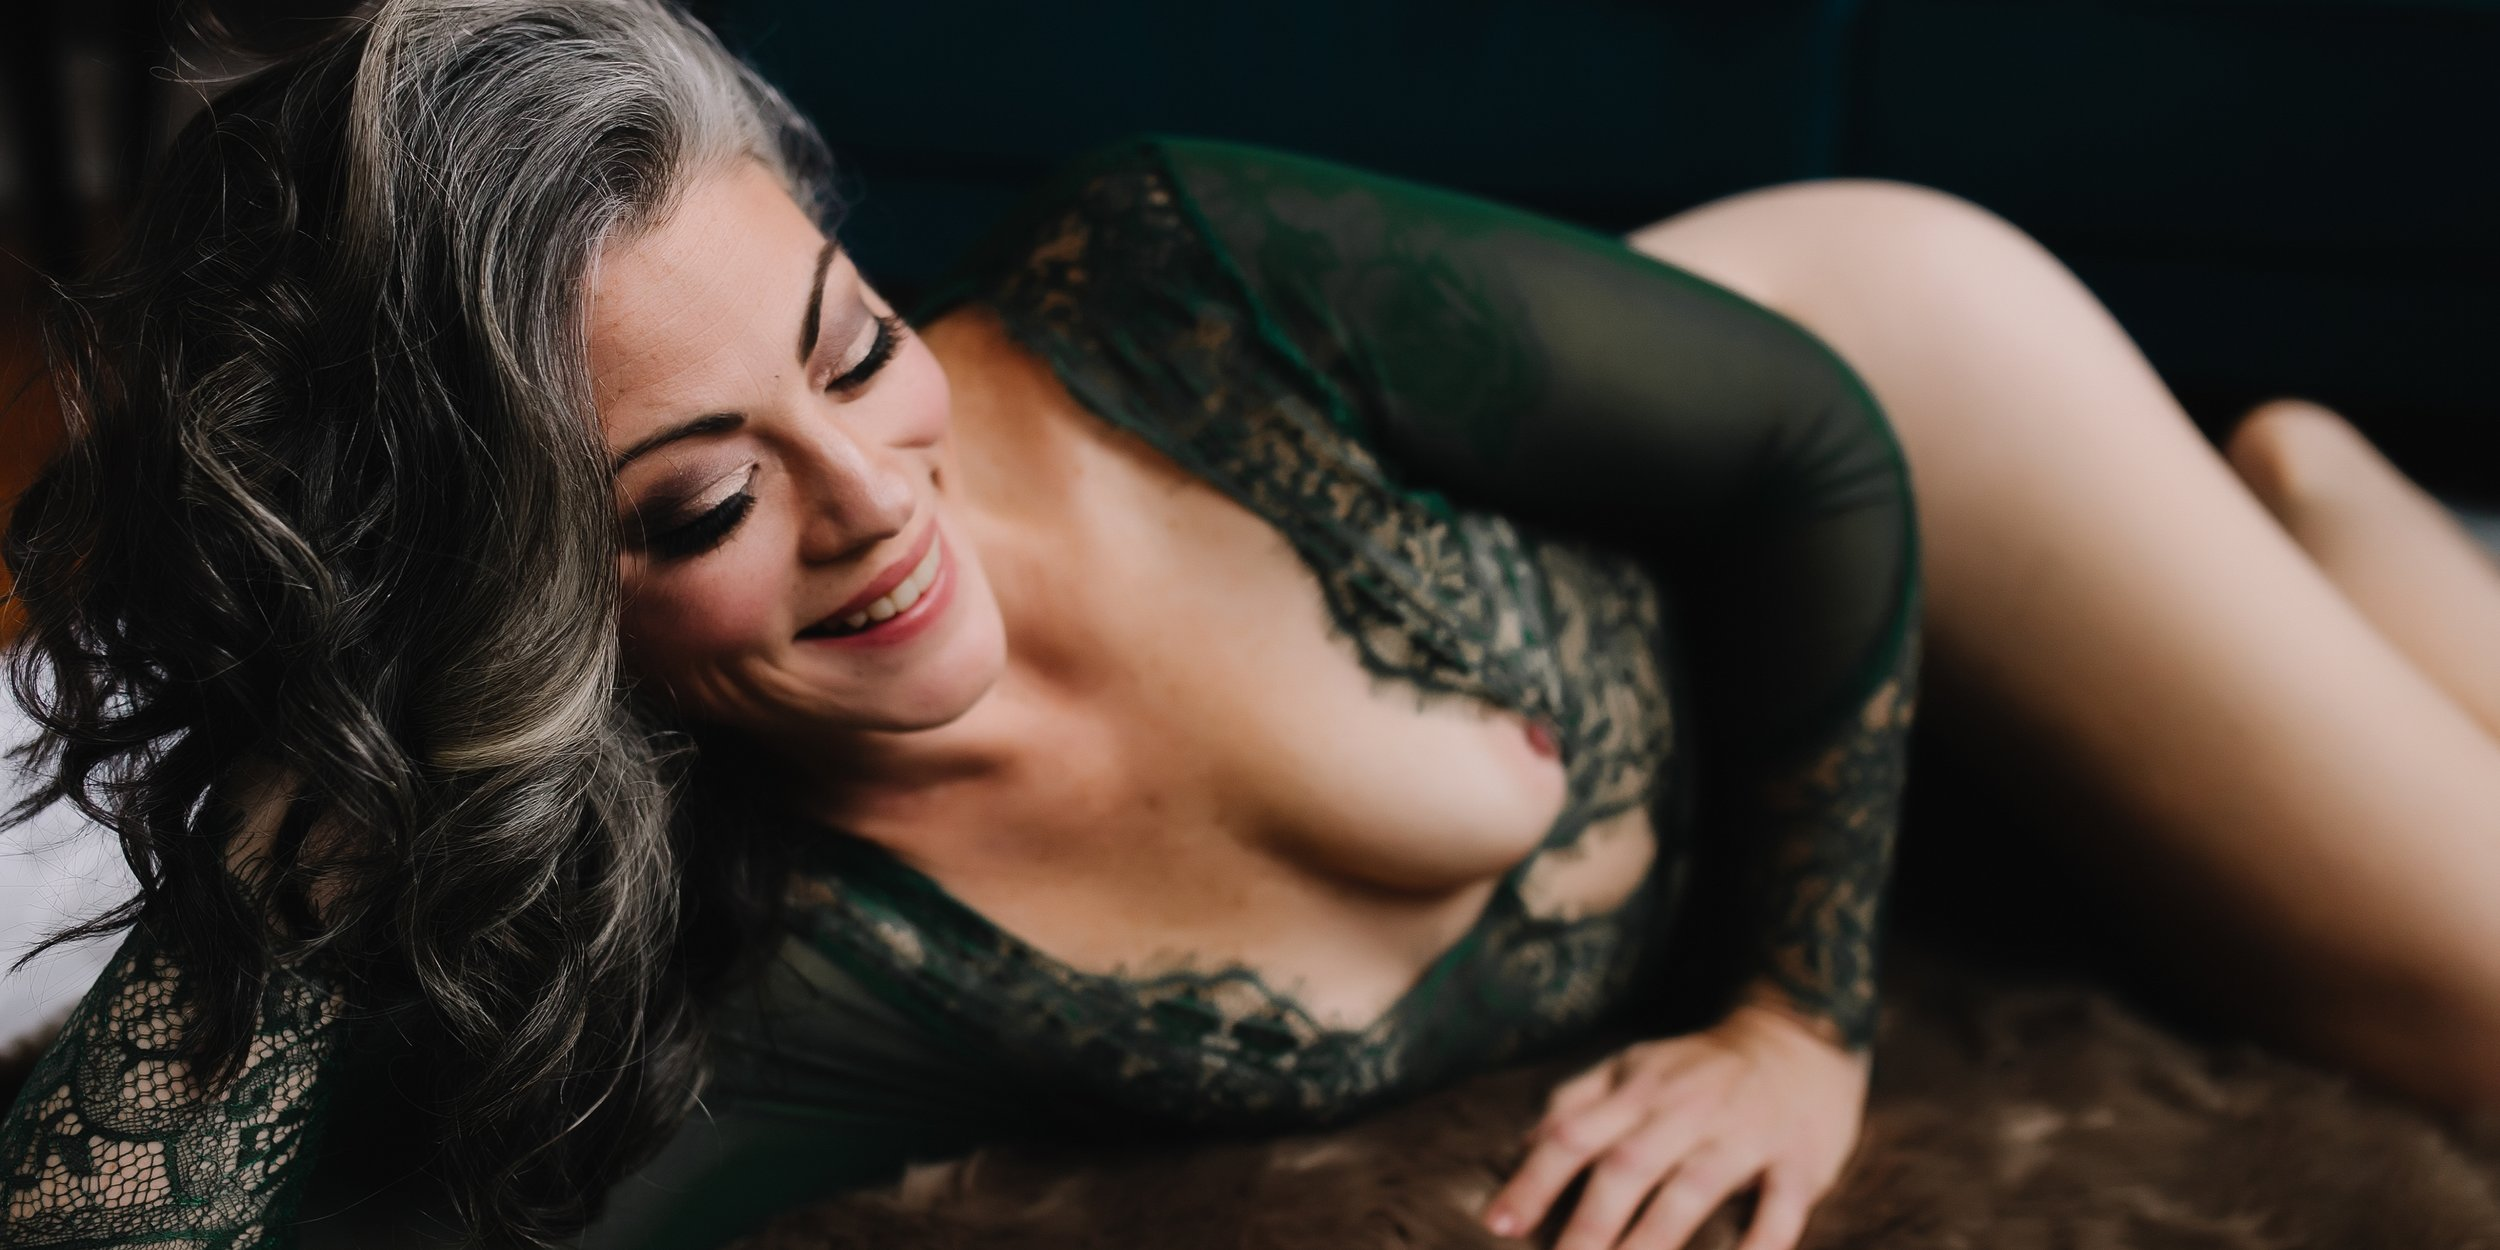 Georgia boudoir photographer